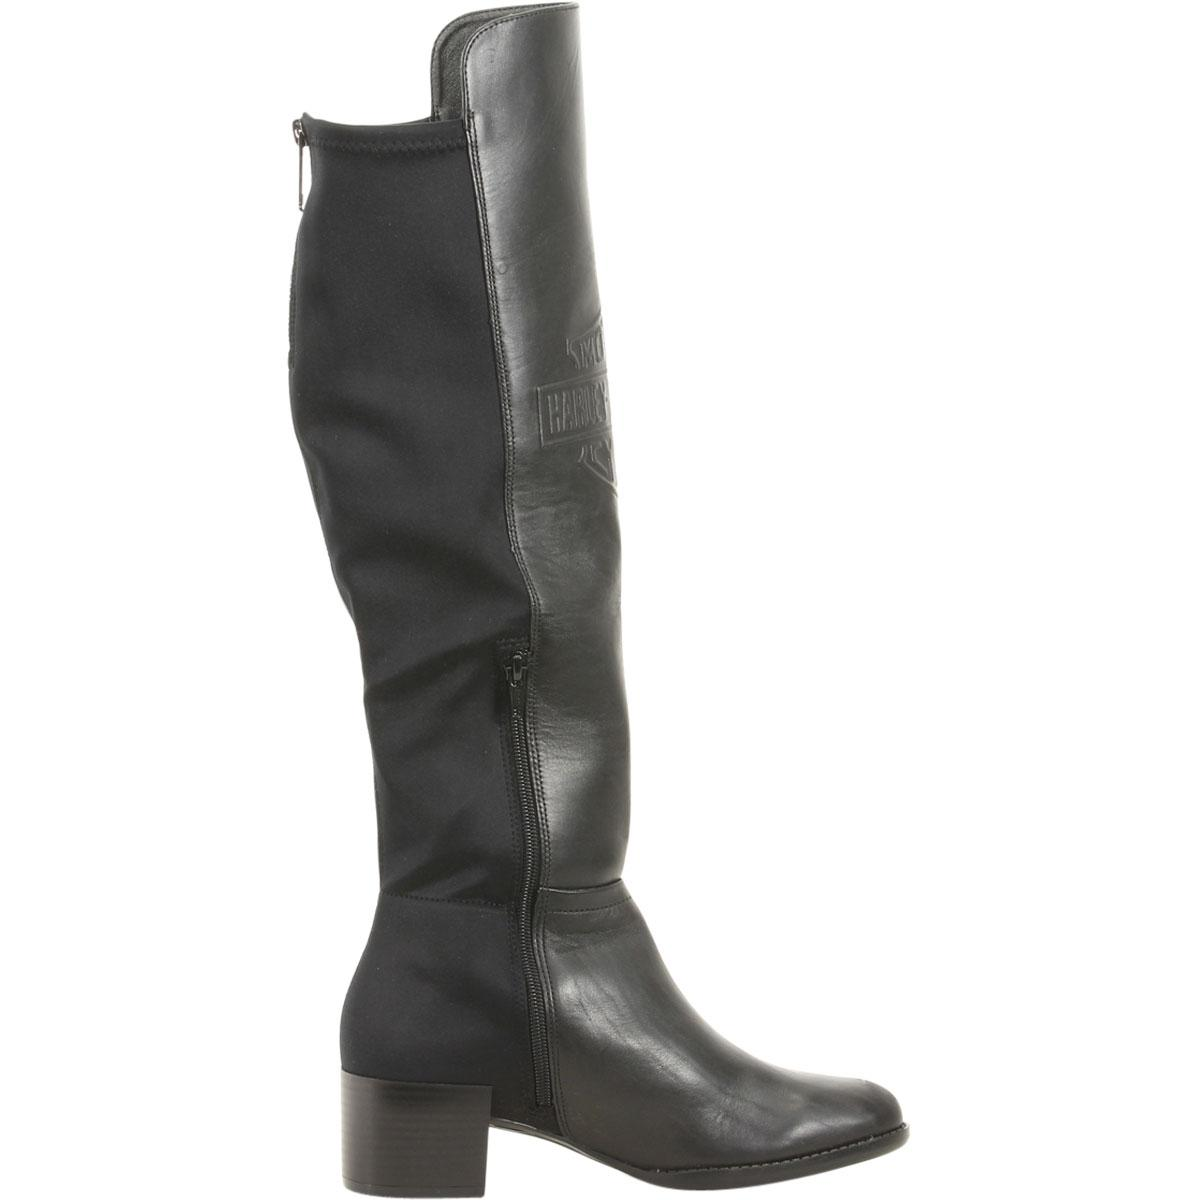 9405c5d00be Harley-Davidson Women s Delwood Boots Shoes by Harley-Davidson